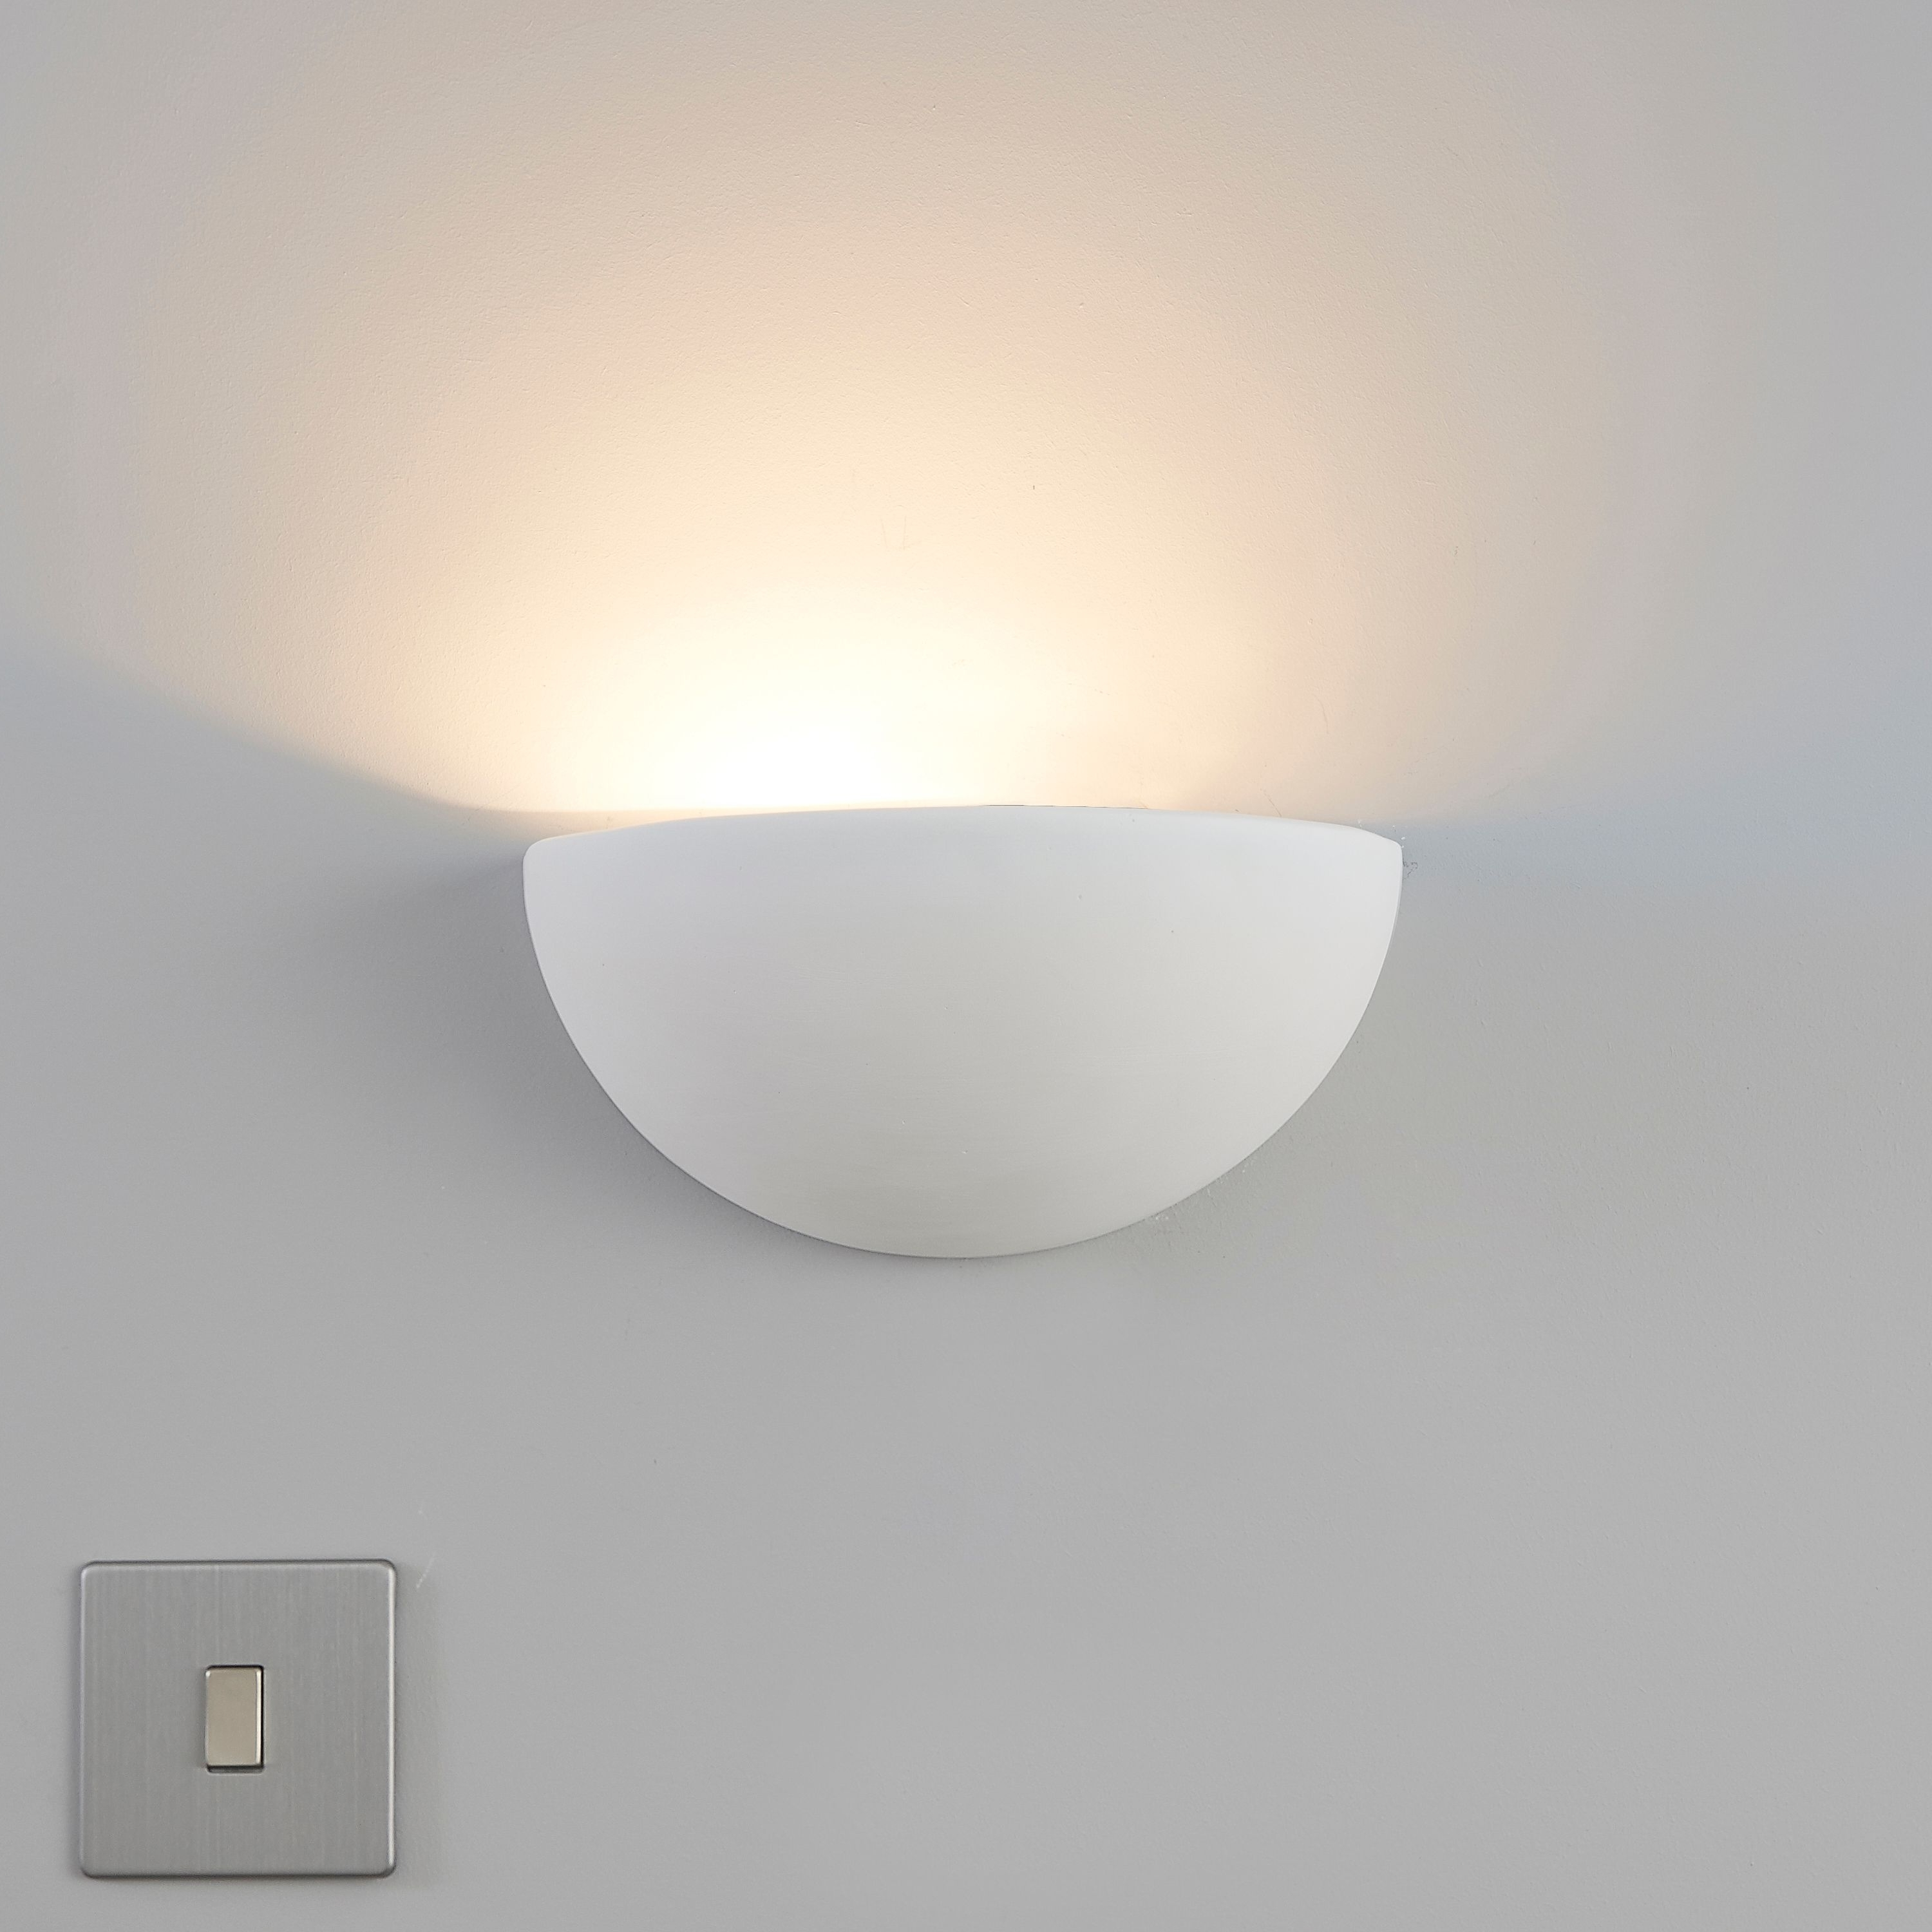 Popular Outdoor Wall Lighting At B&q With Aura Cream Wall Uplighter (View 18 of 20)